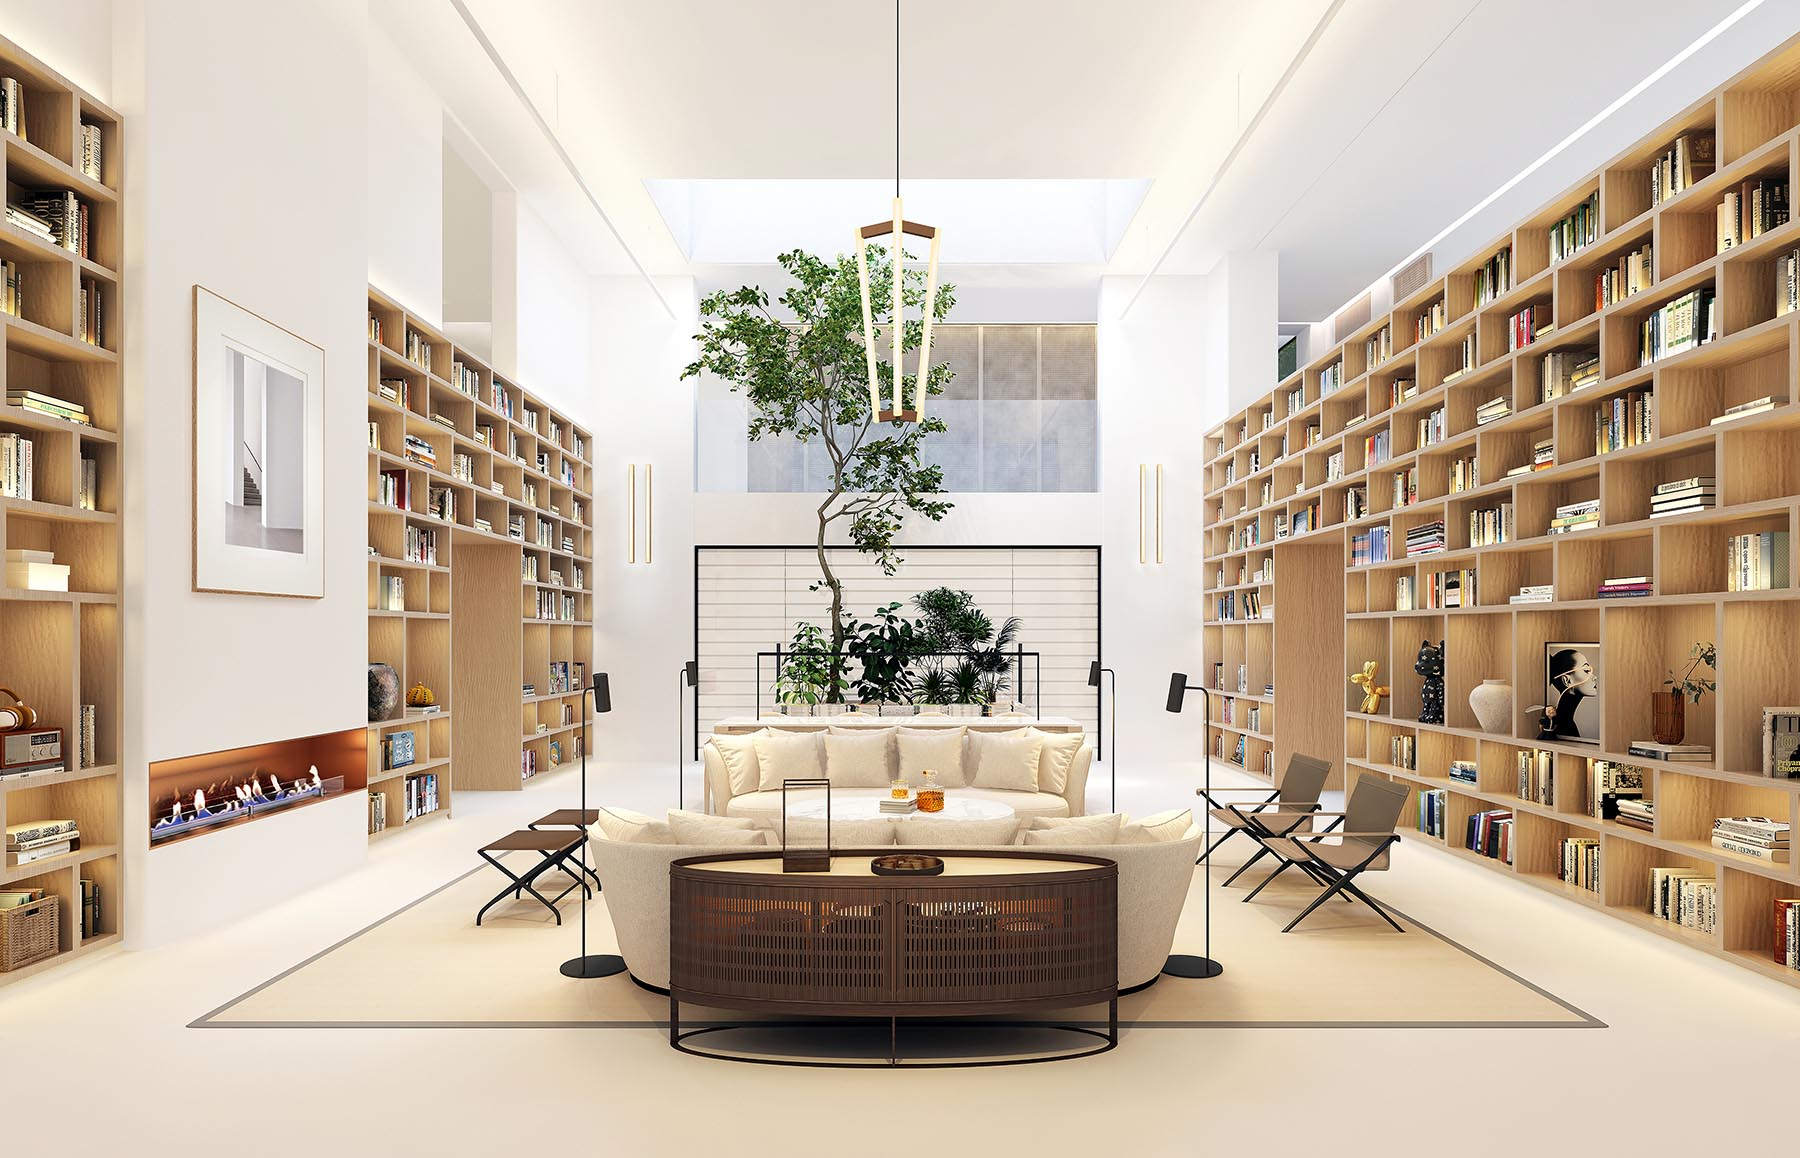 A large room with tall wood bookshelves.